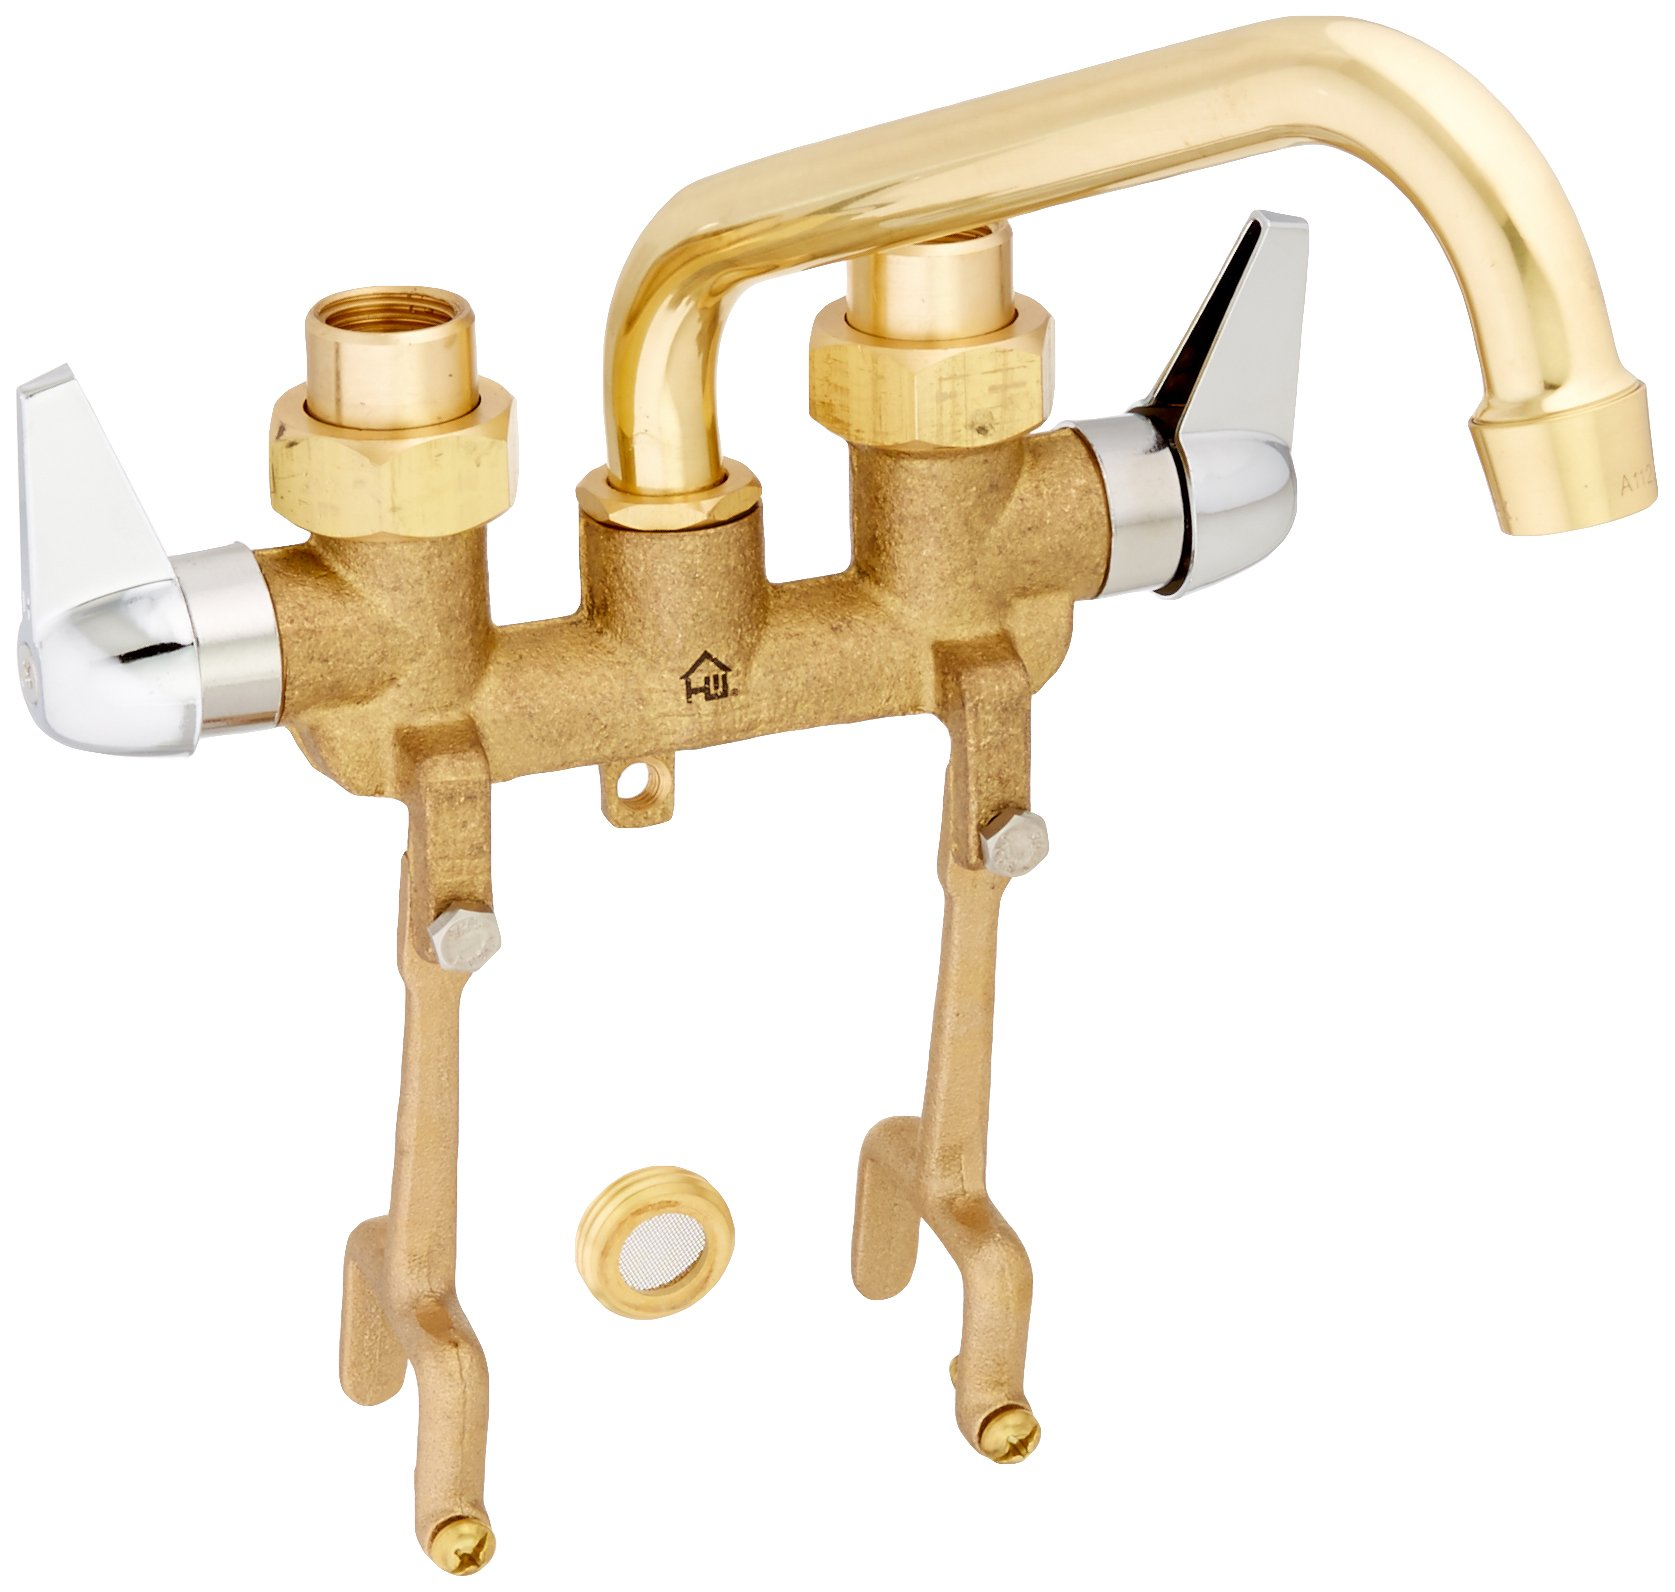 Hombd|#Homewerks 3310-255-RB-B Homewerks Two Handle Laundry Tray Faucet with Straddle Legs, Rough Brass, by Homewerks